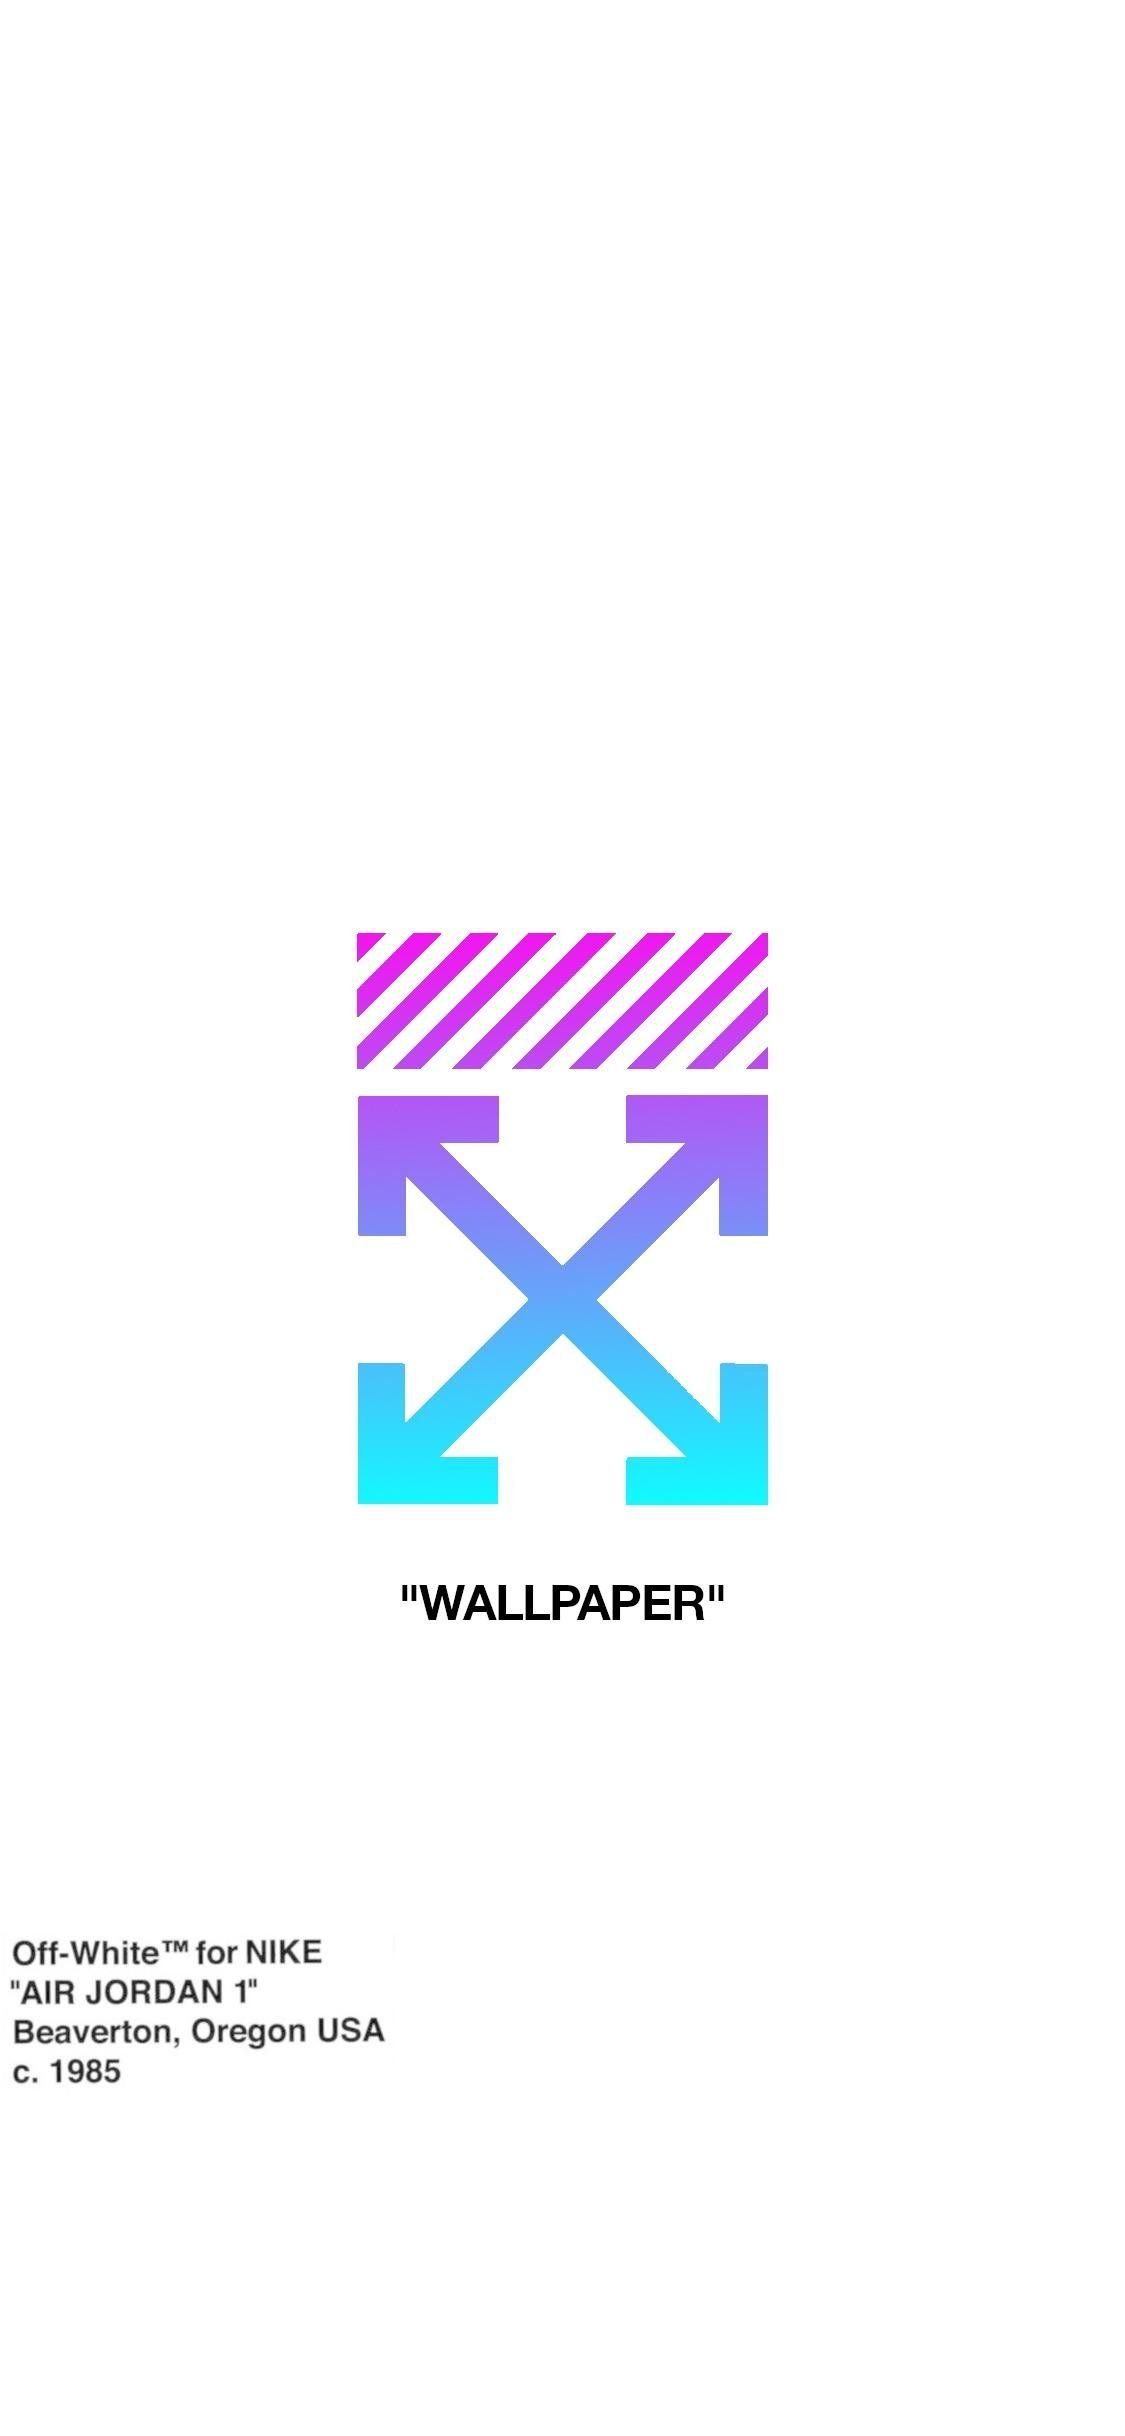 Nike Off White Wallpapers Wallpaper Cave